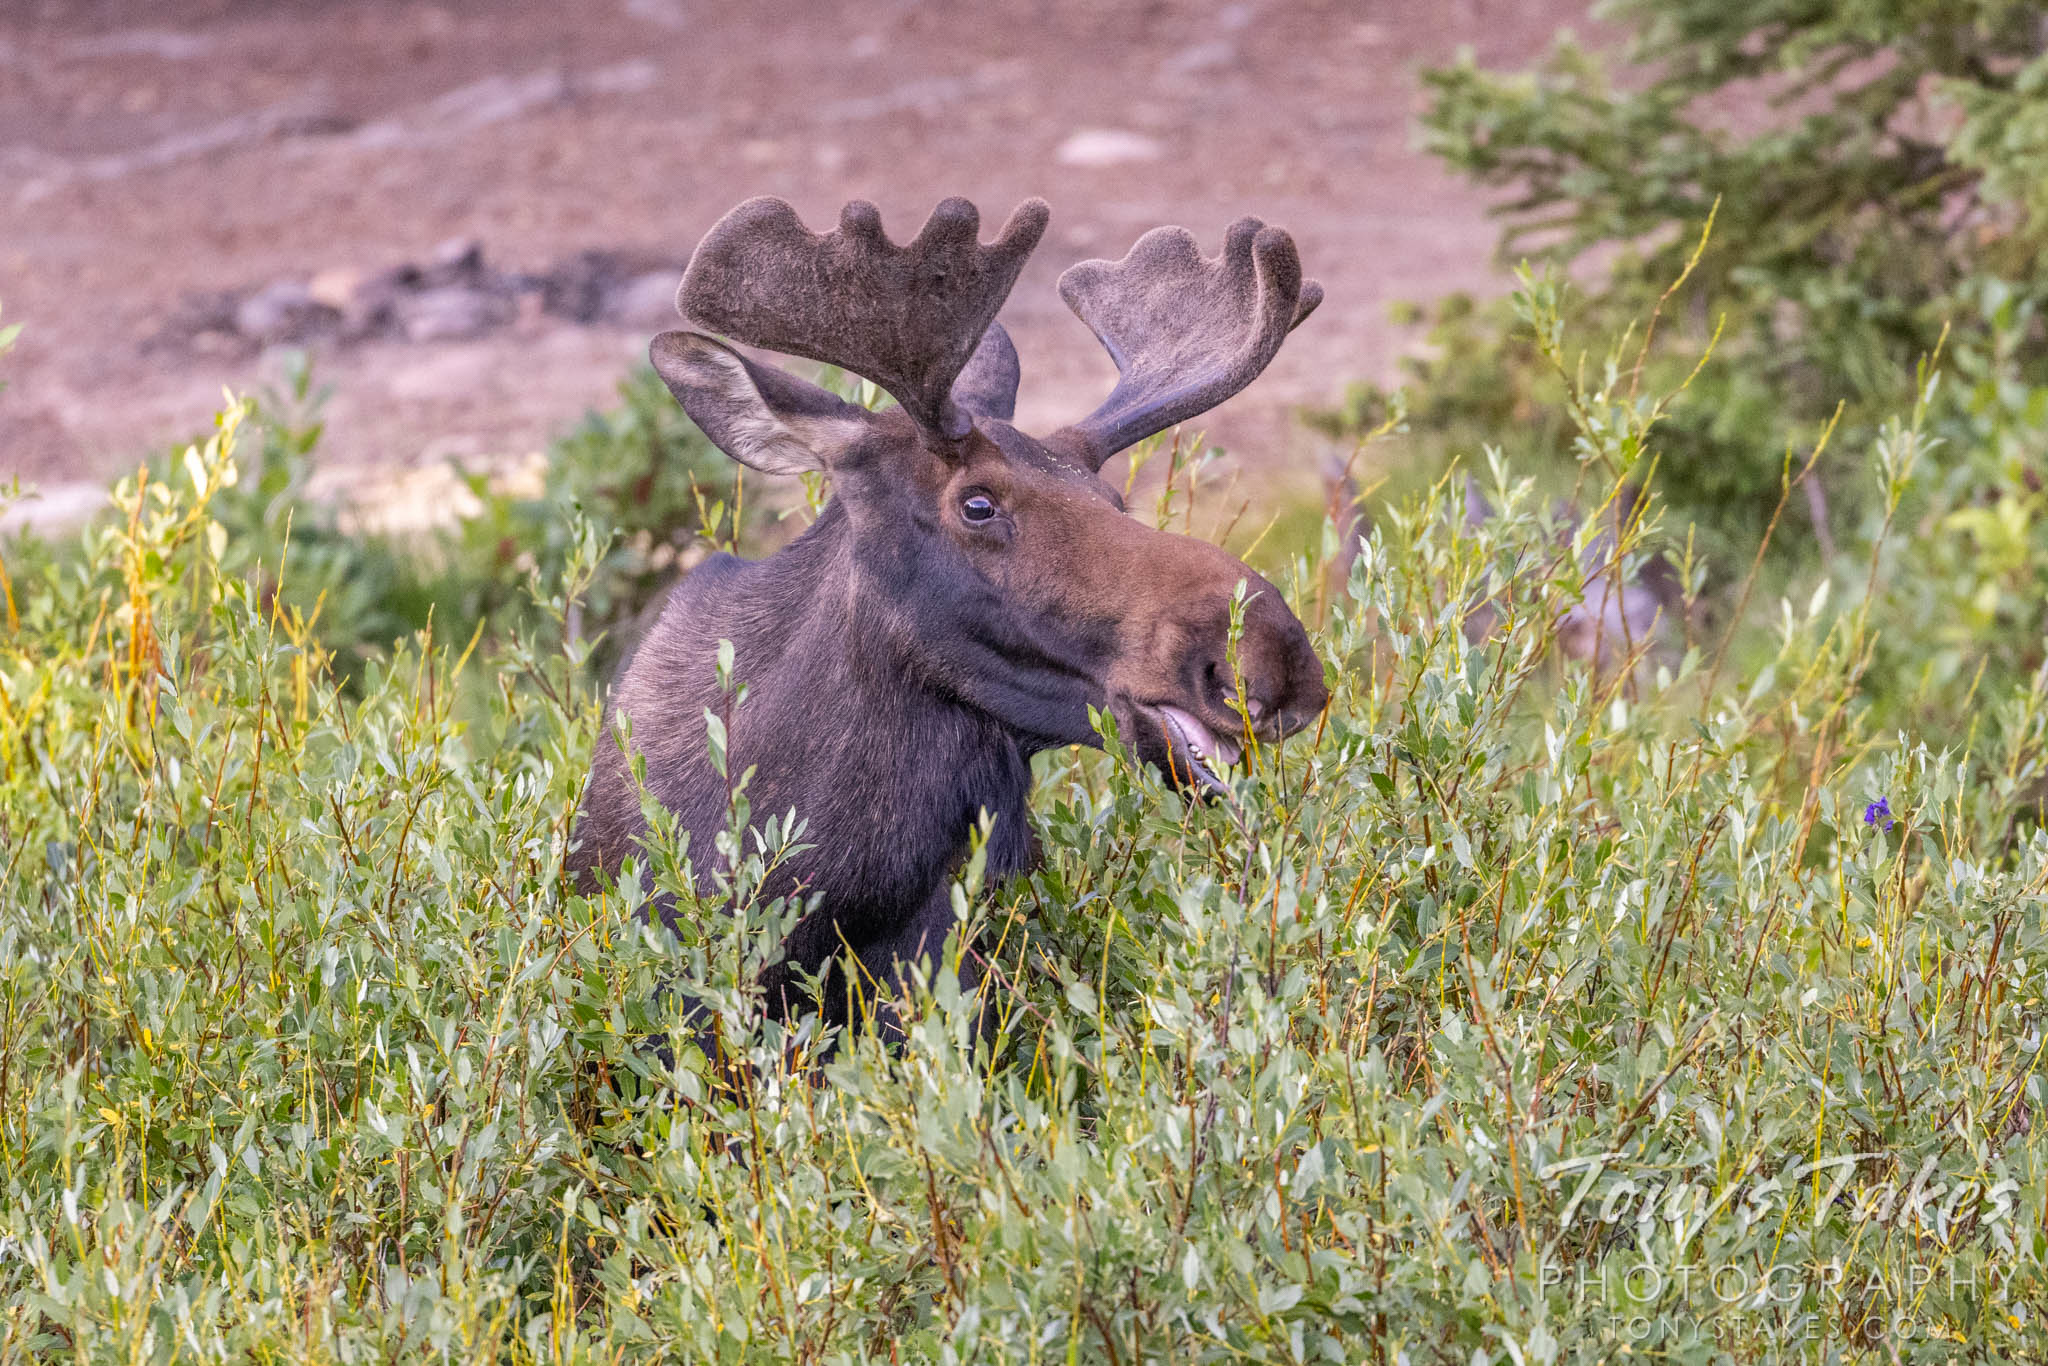 Snacking moose. Canon R5, Canon EF 100-400mm f/4.5-5.6L IS II USM @ 350mm, 1/500, f/5.6, ISO 3200.